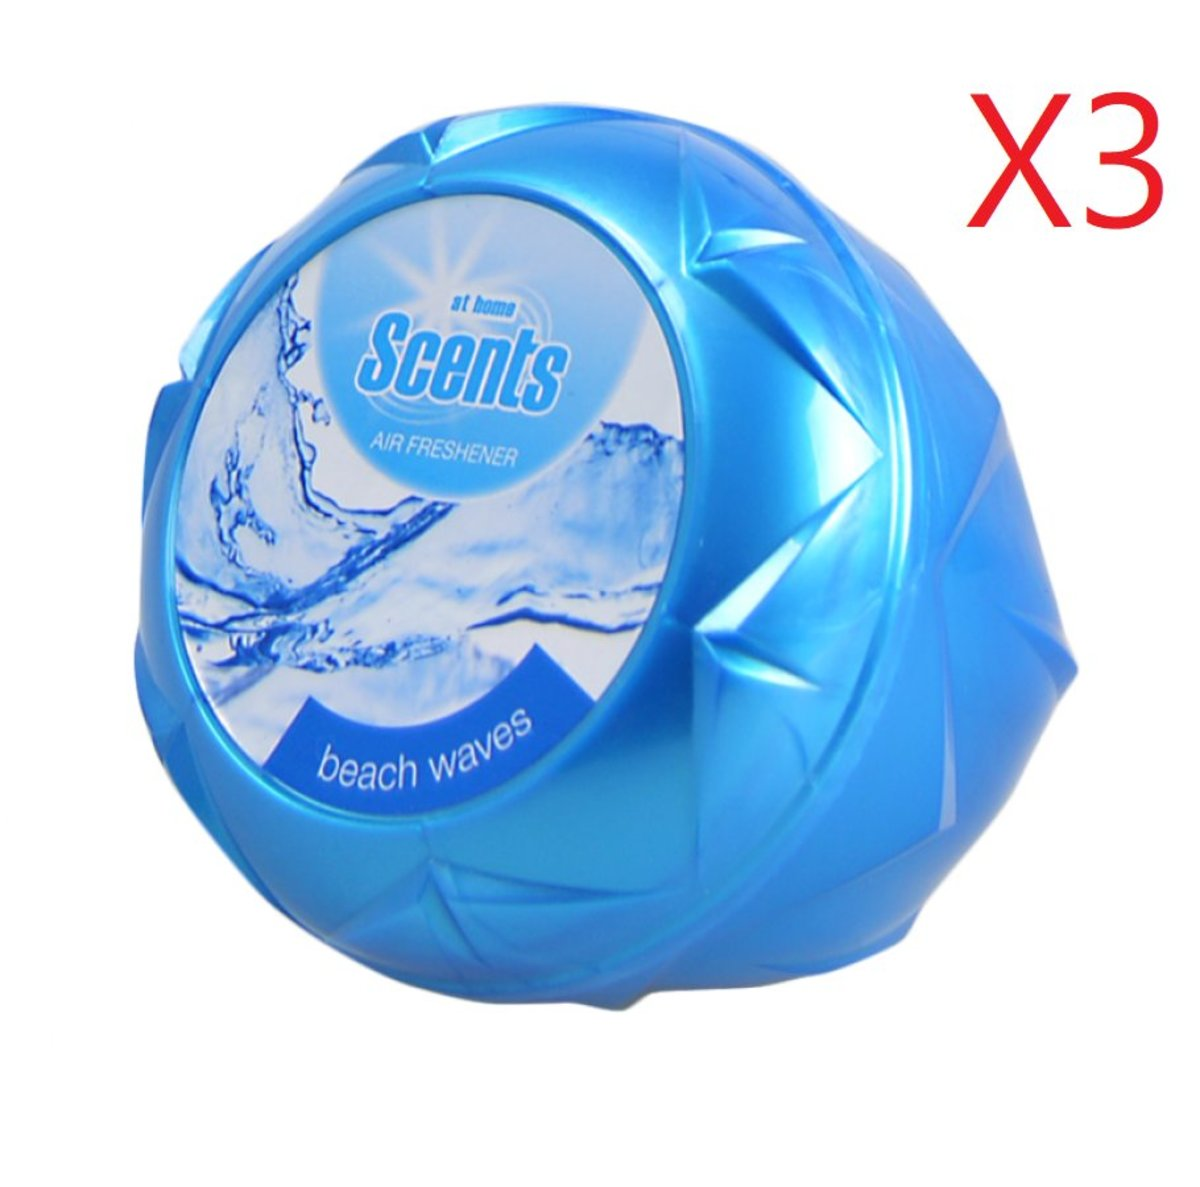 At Home Scents Air Refeshner  150g - Beach Wave    X 3pcs [Parallel Import Product]